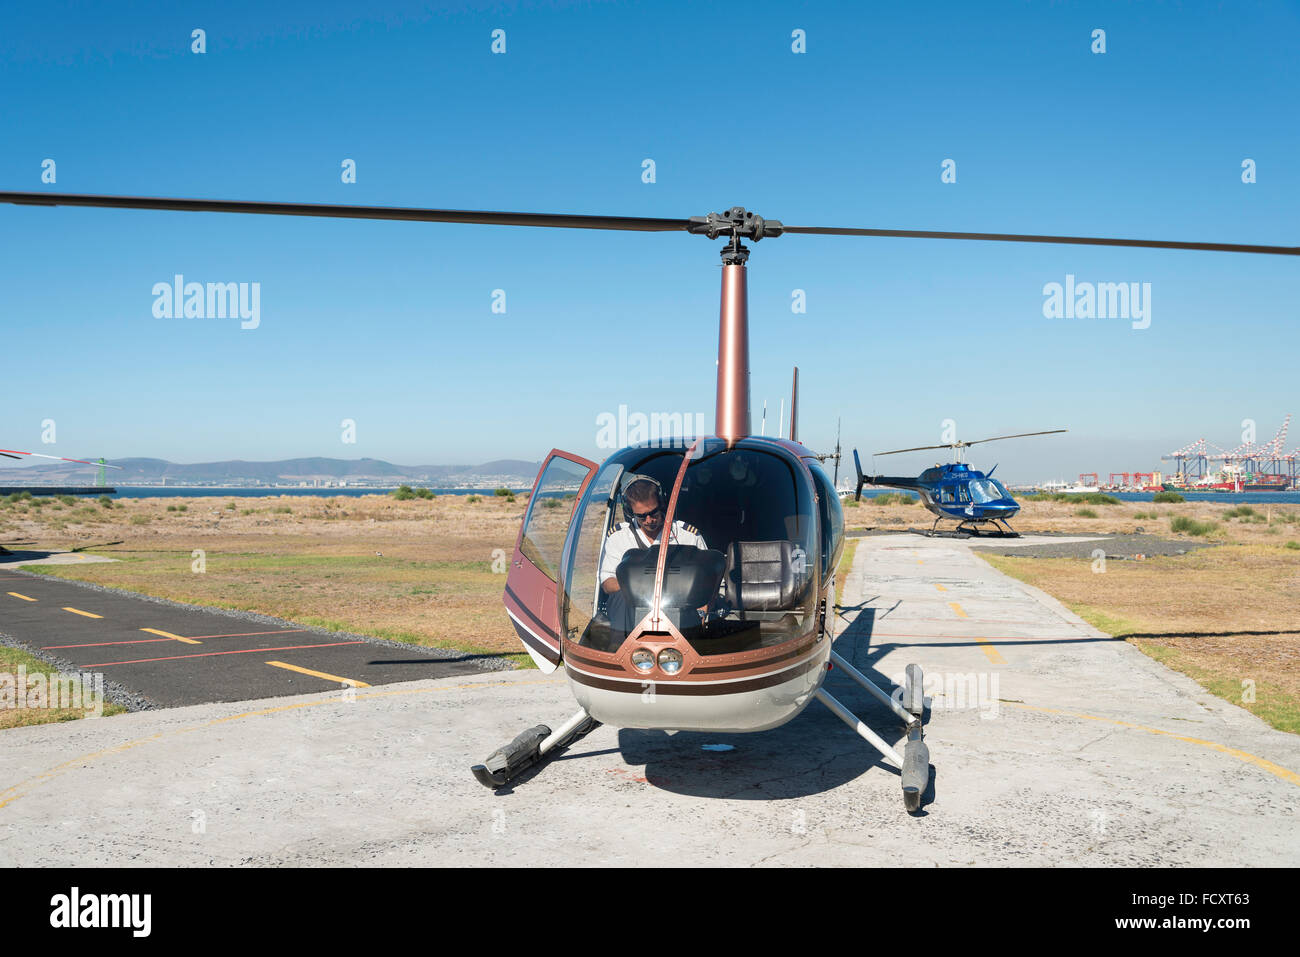 City sightseeing helicopter, Cape Town, City of Cape Town Municipality, Western Cape Province, Republic of South - Stock Image